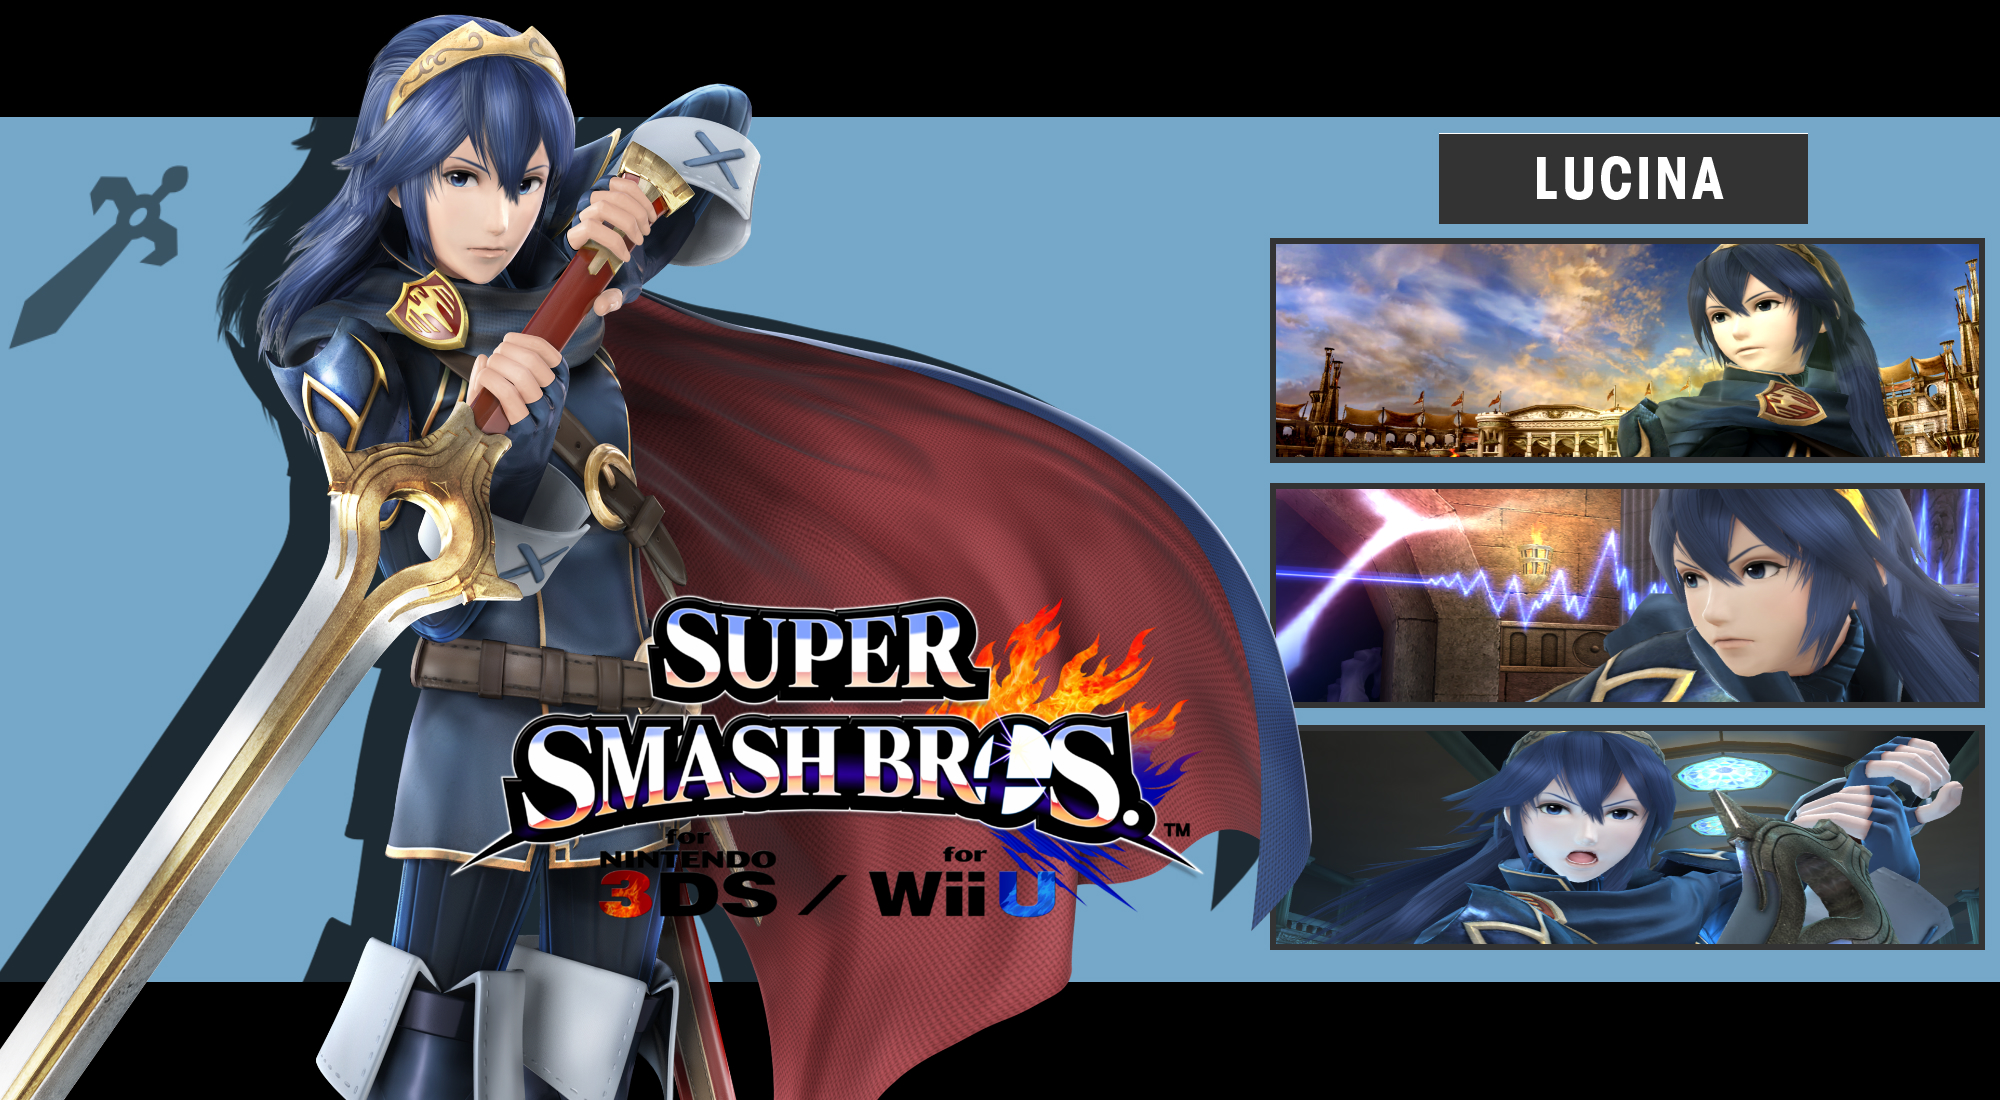 Super Smash Bros. 3DS/Wii U - Lucina Wallpaper by ...